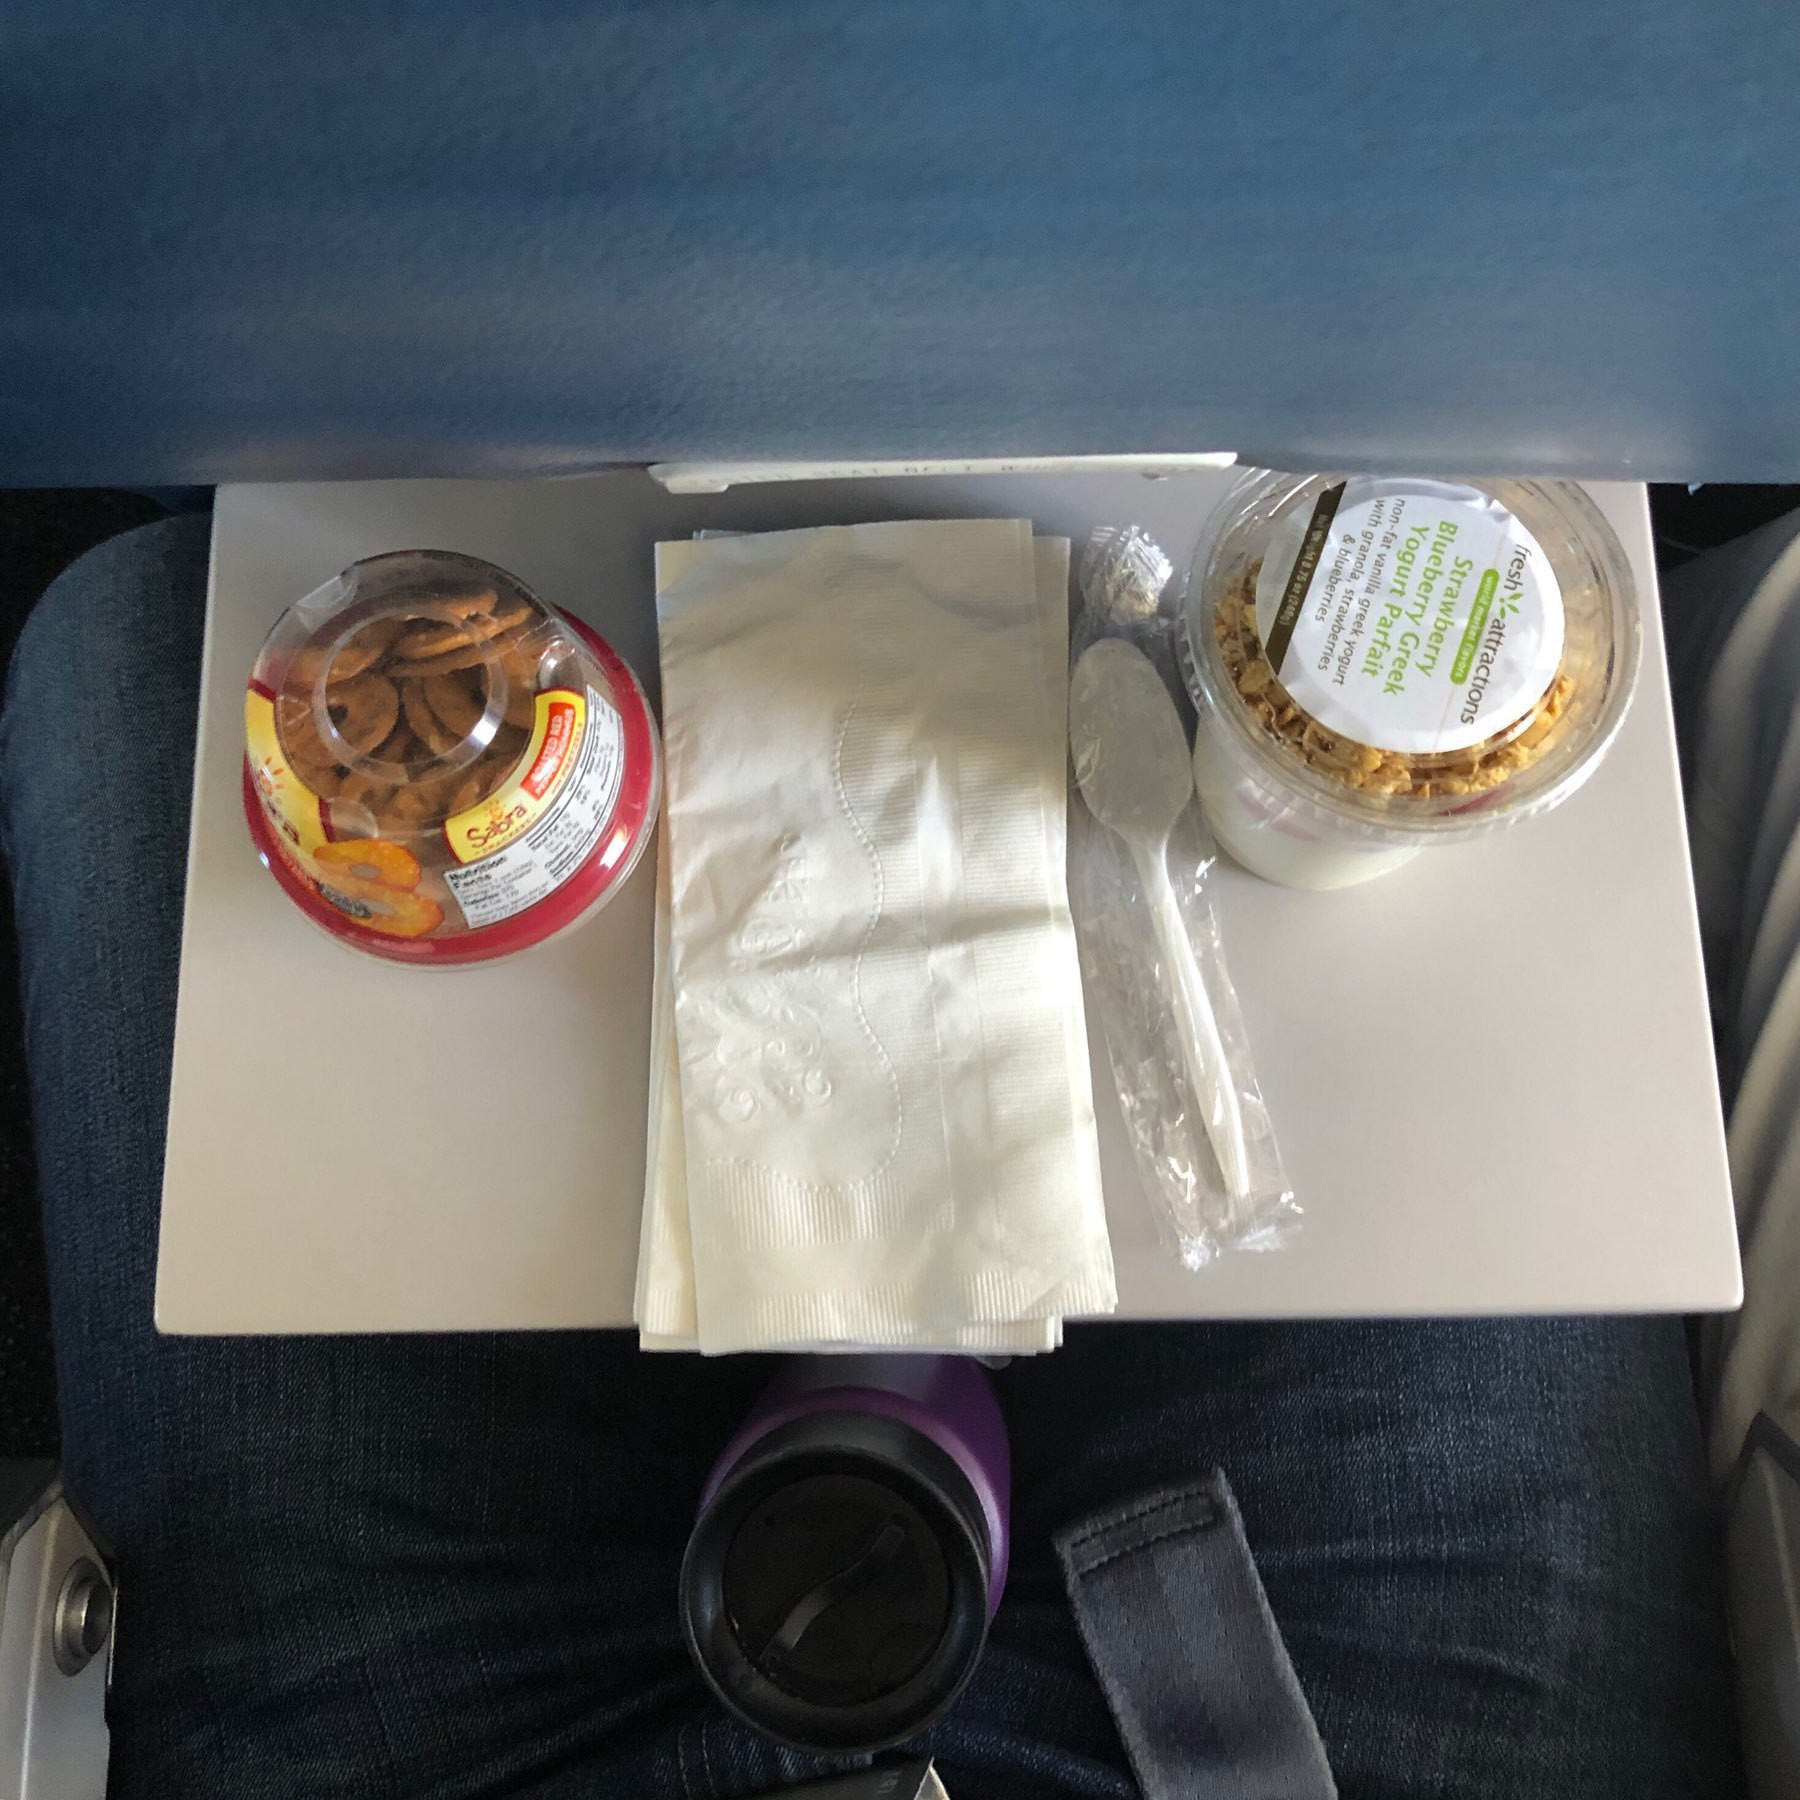 Airline tray table with not enough room